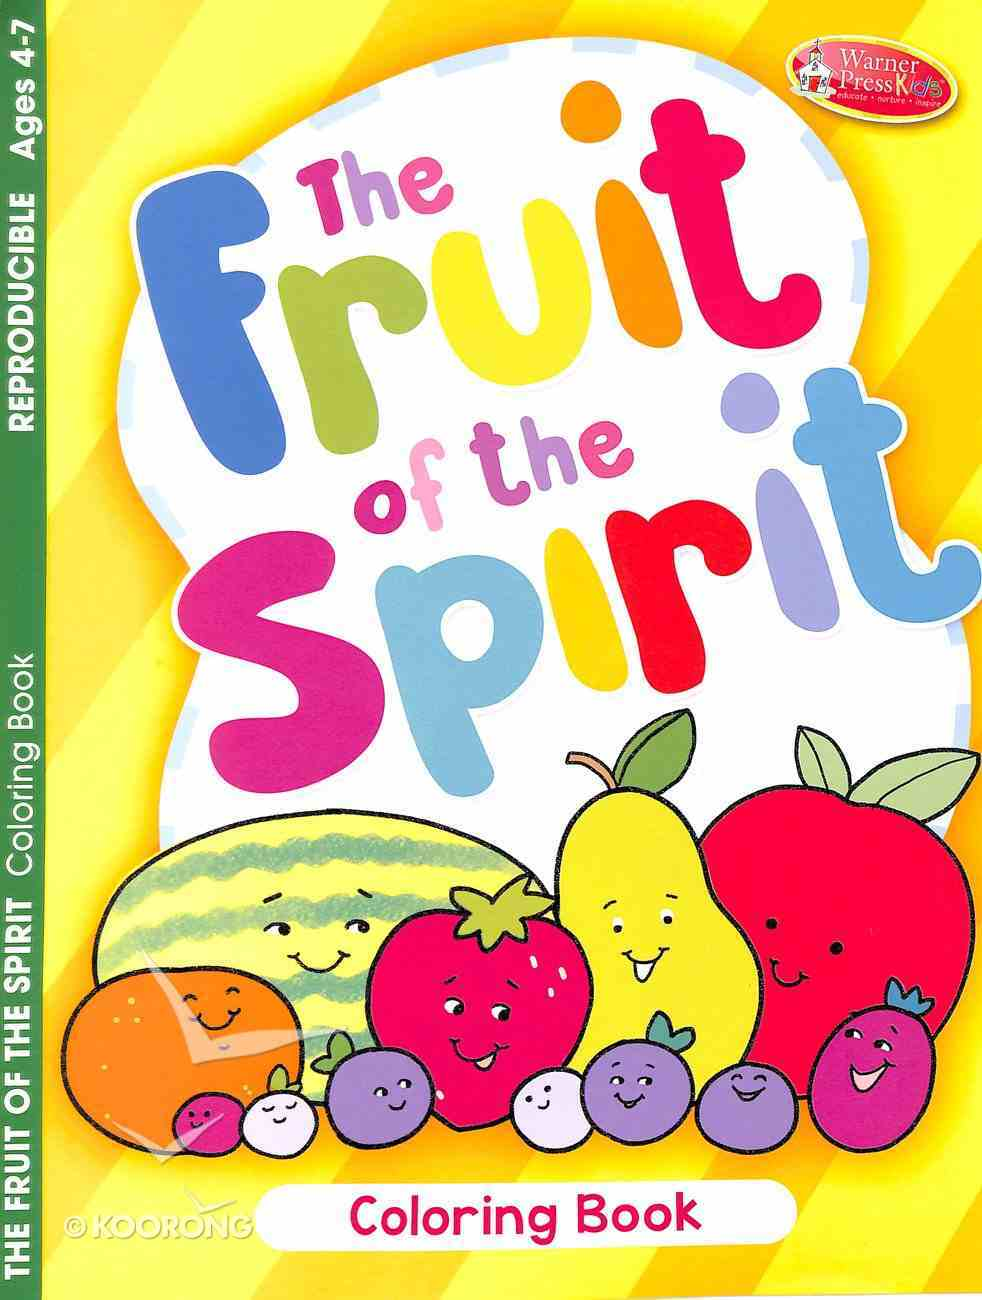 Fruit of the Spirit (Ages 4-7, Reproducible) (Warner Press Colouring & Activity Books Series) Paperback